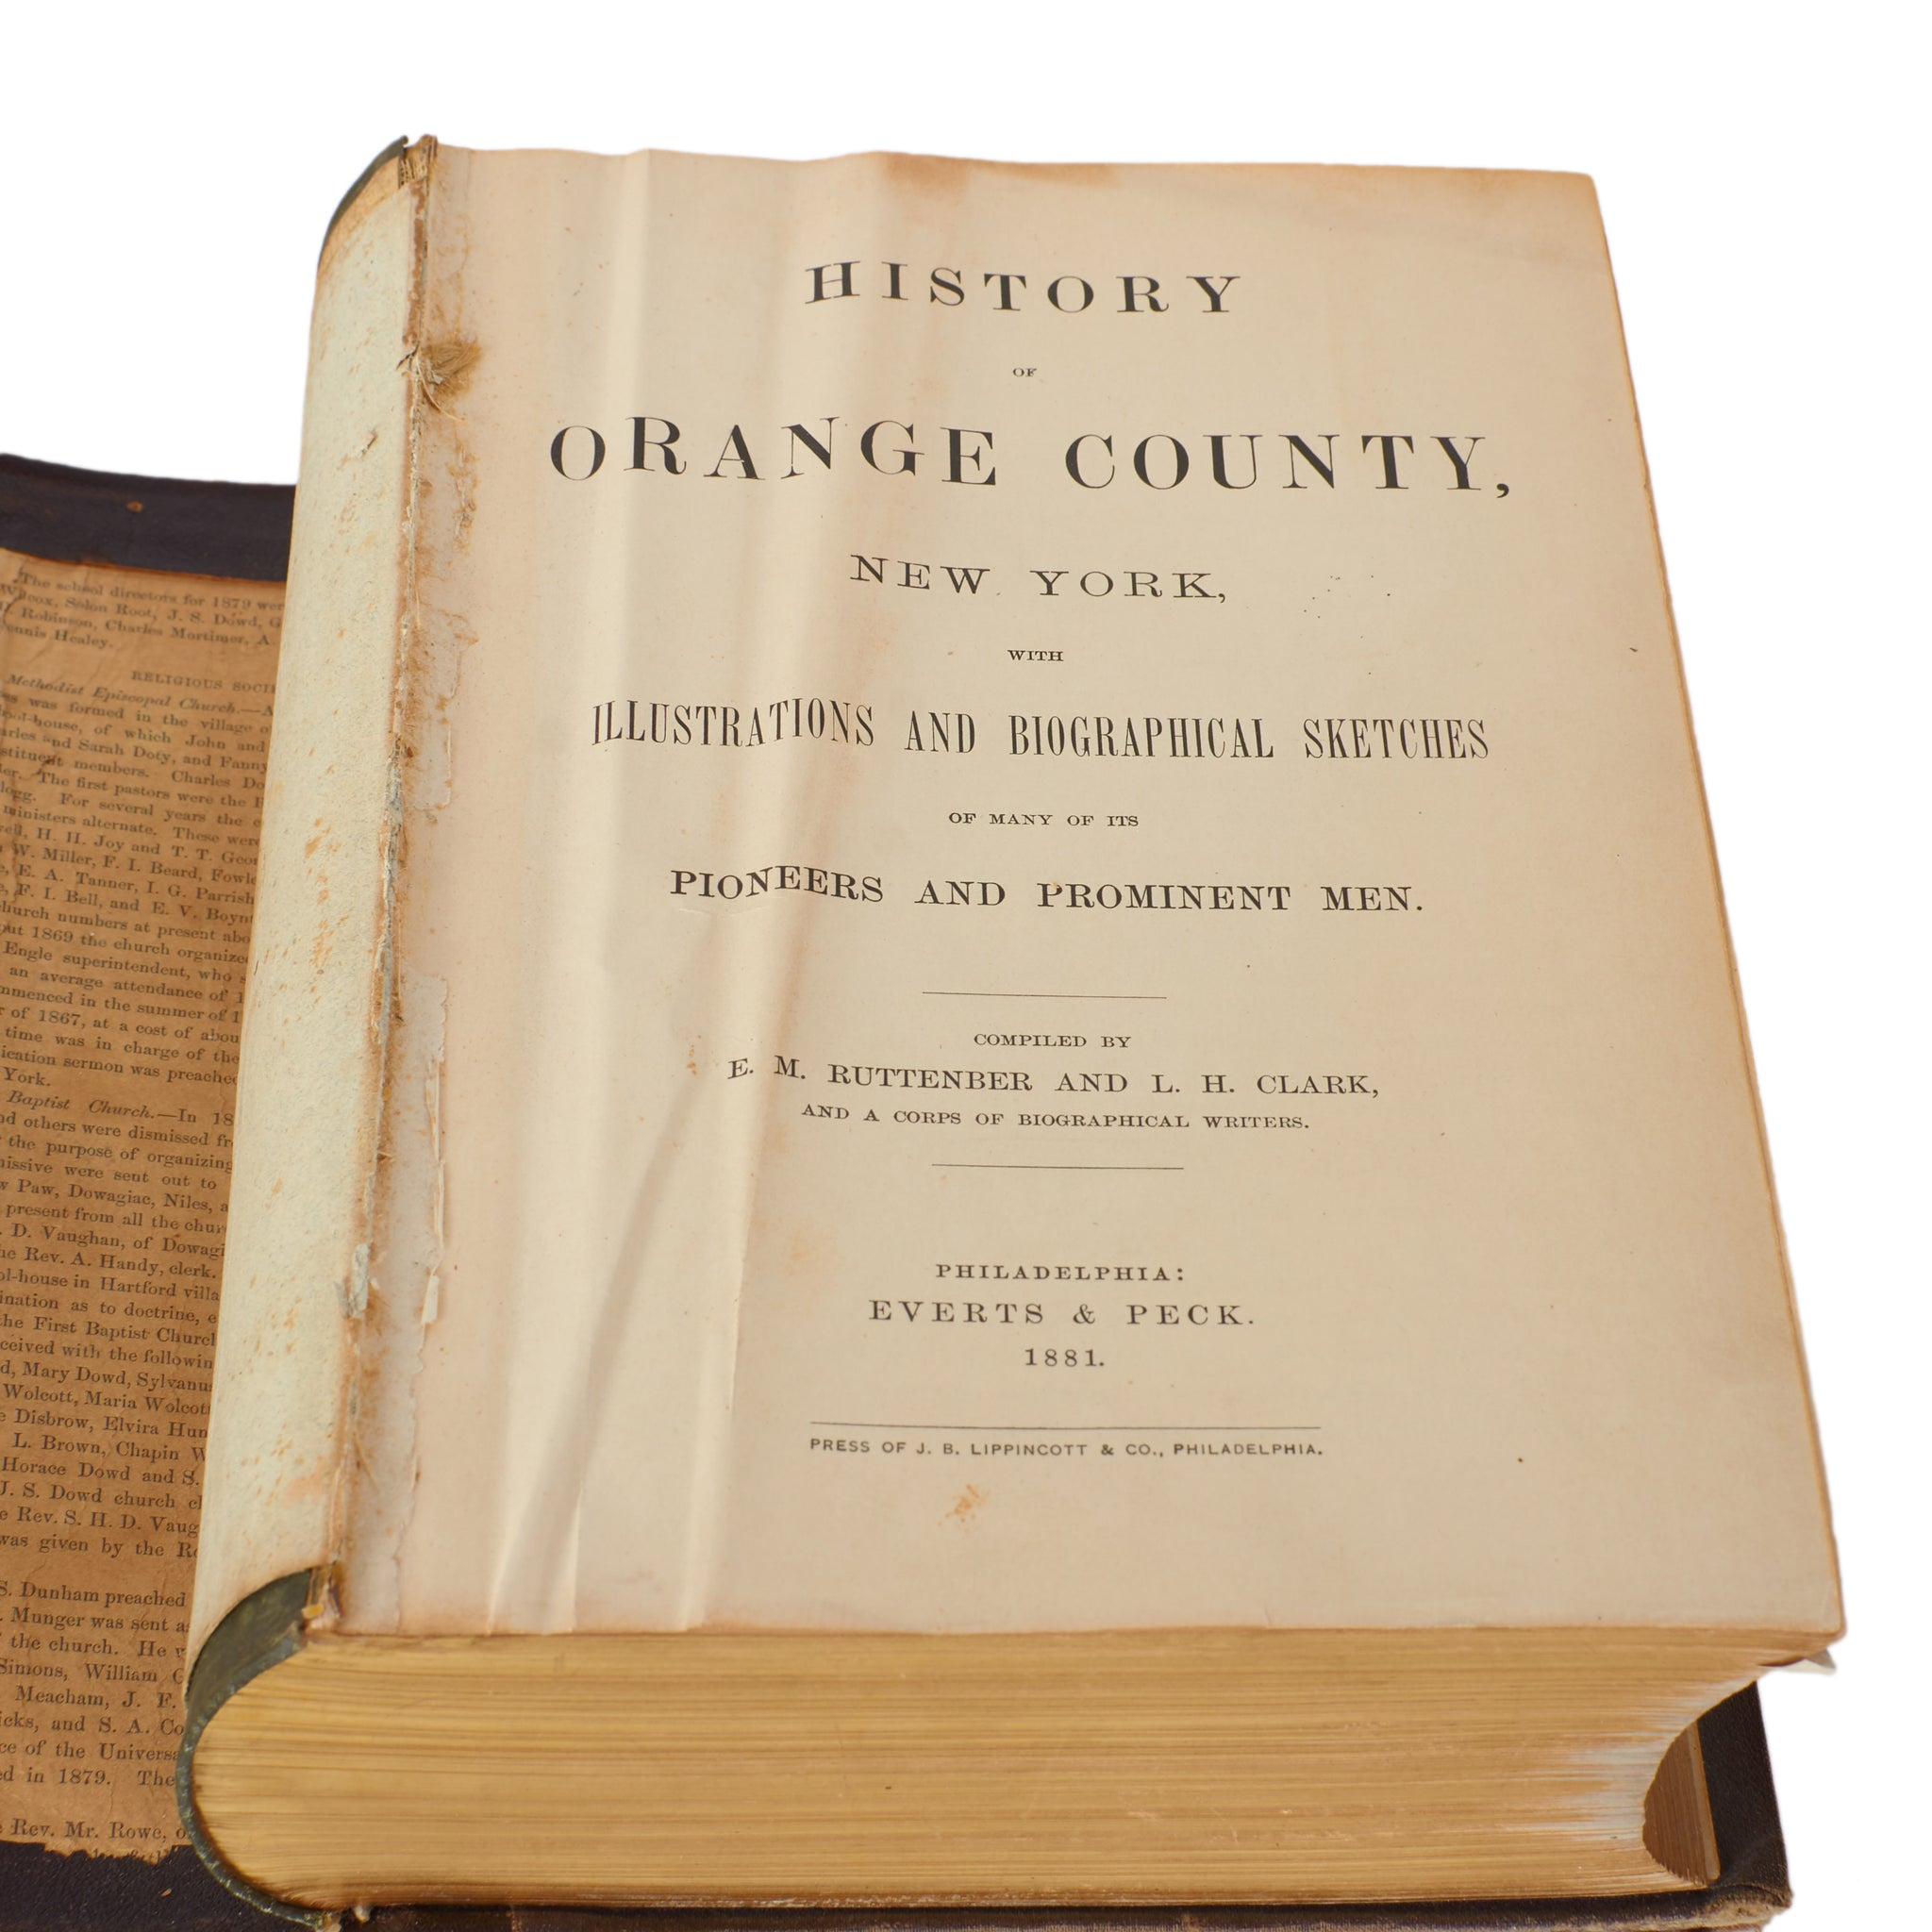 History of Orange County, New York, Everts & Peck 1881